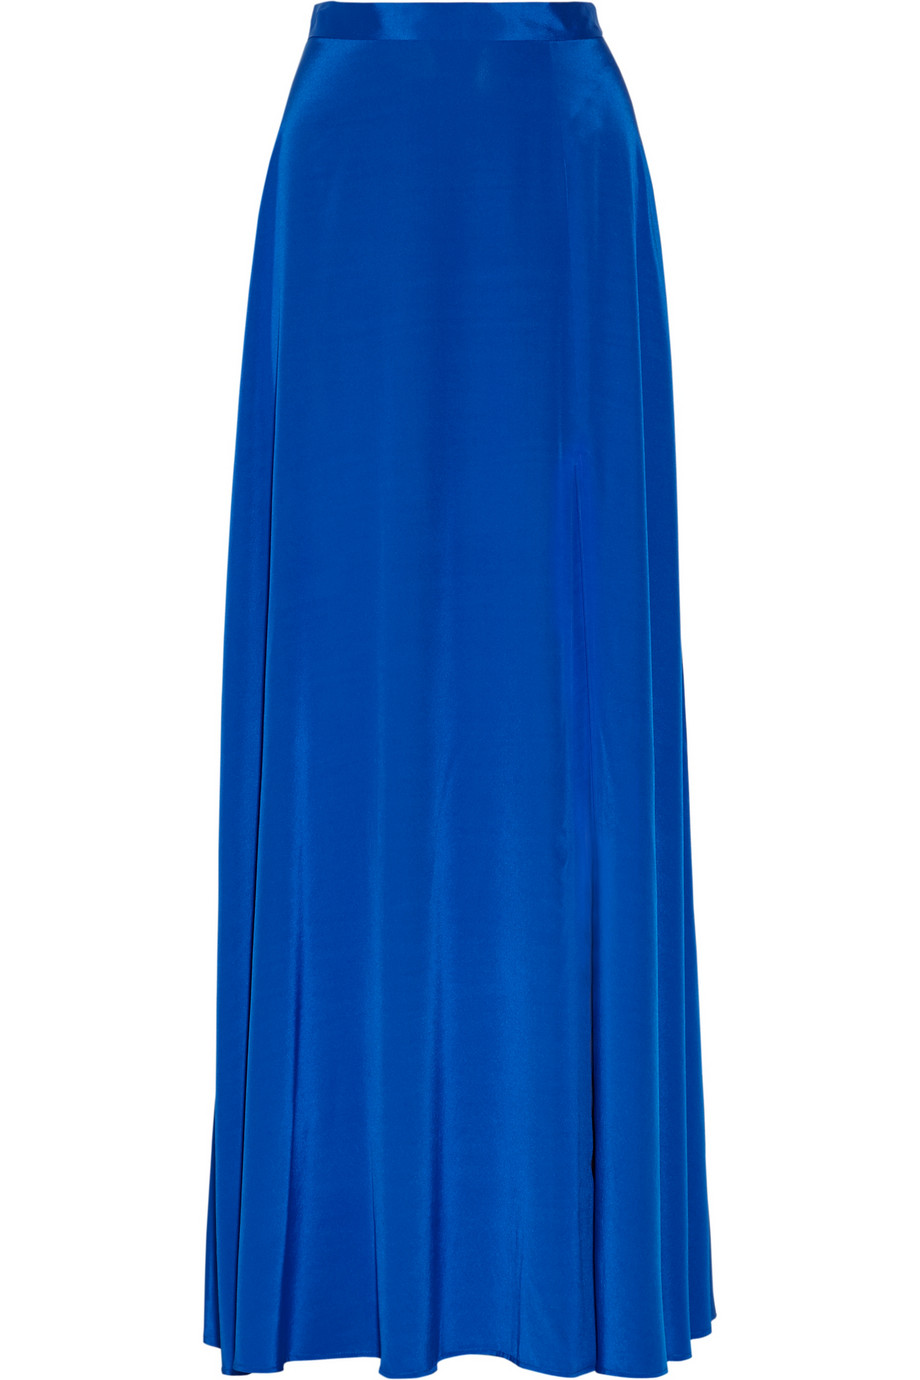 dkny stretch silk crepe de chine maxi skirt in blue lyst